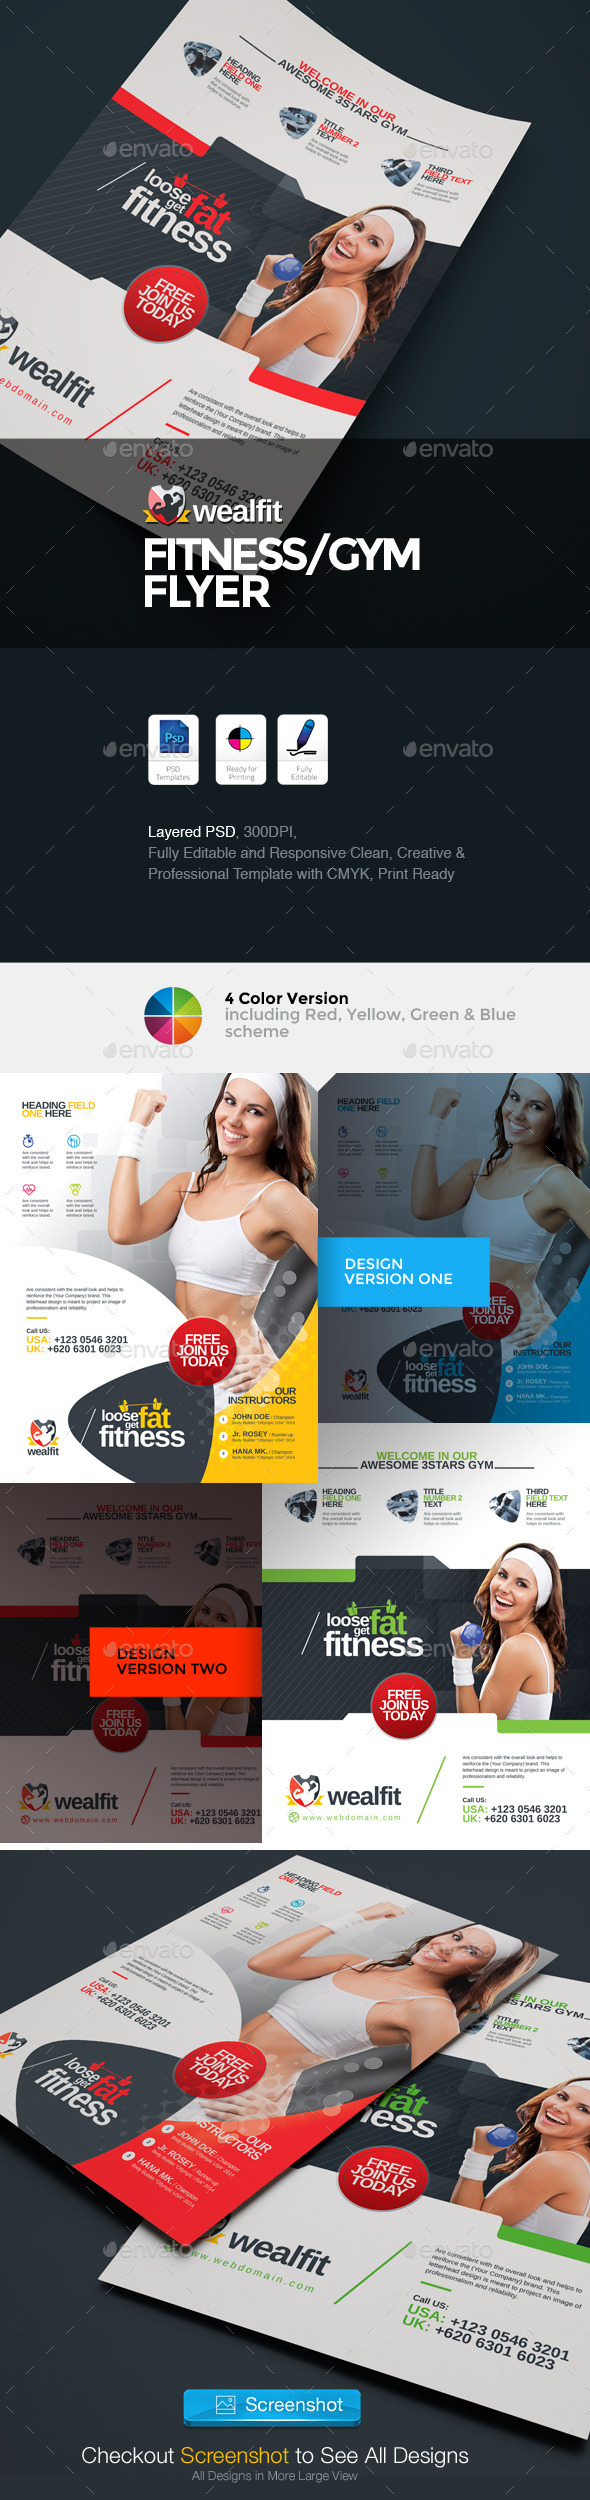 WealFit | Fitness - Gym Flyer